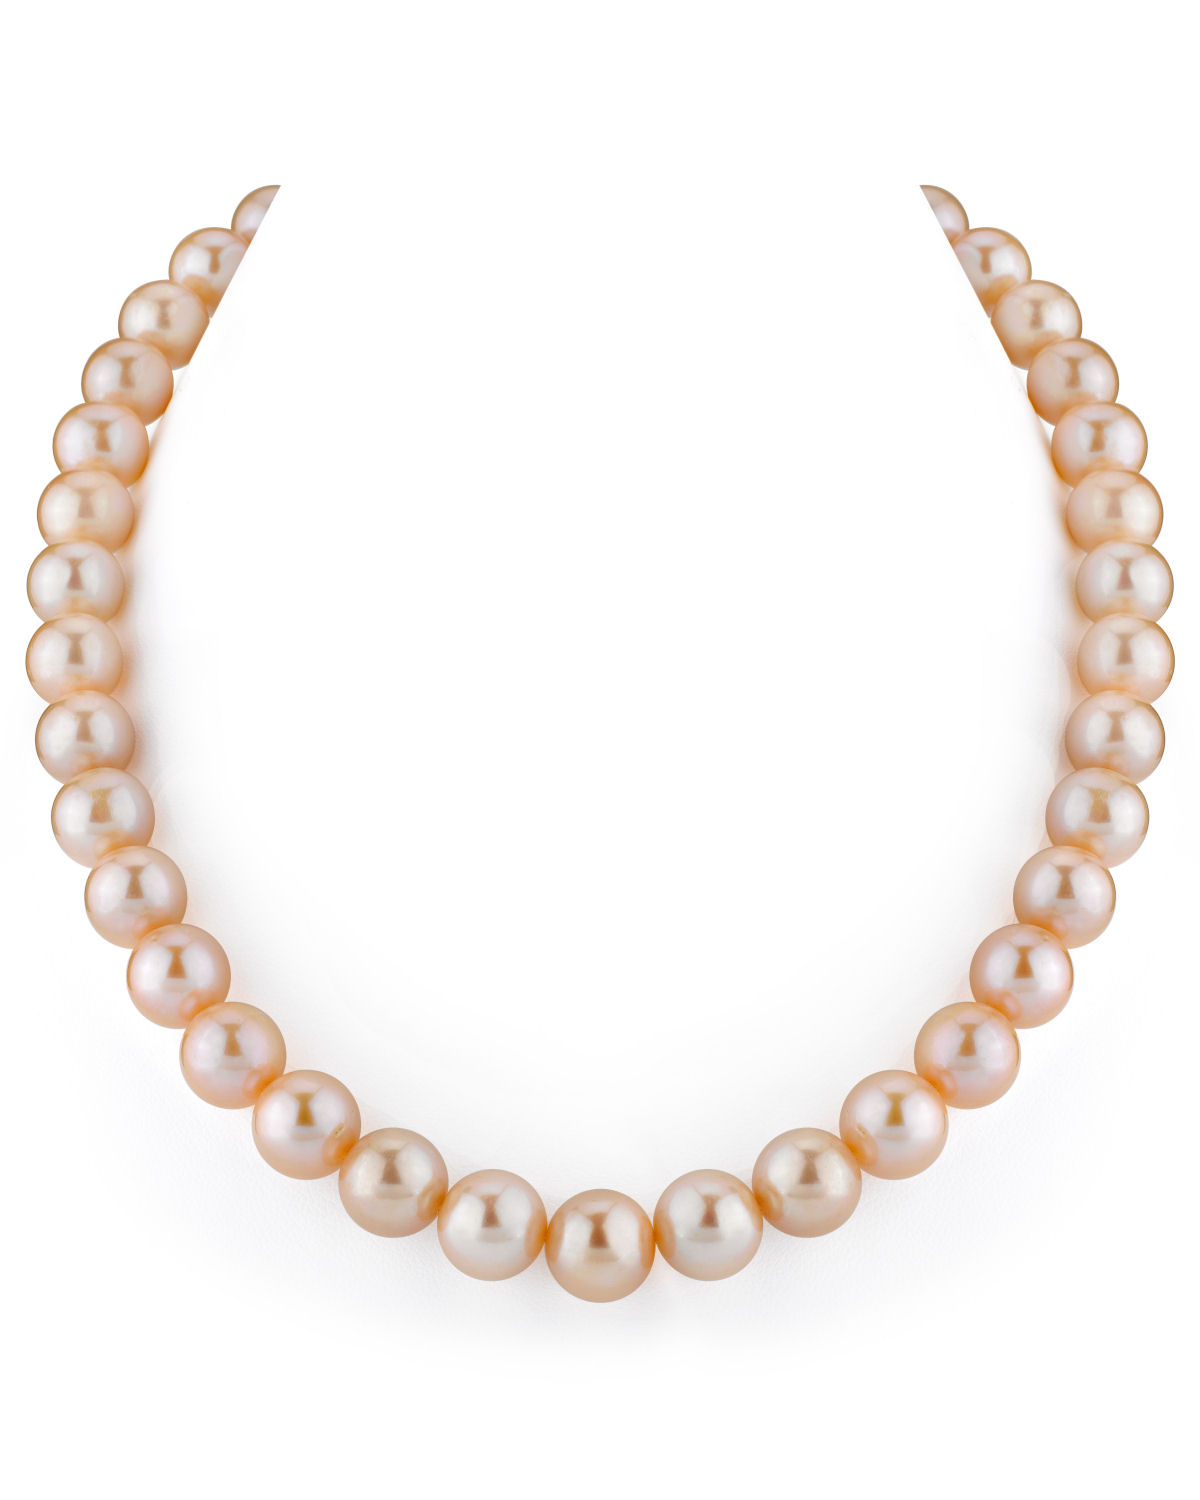 12-13mm Peach Freshwater Pearl Necklace